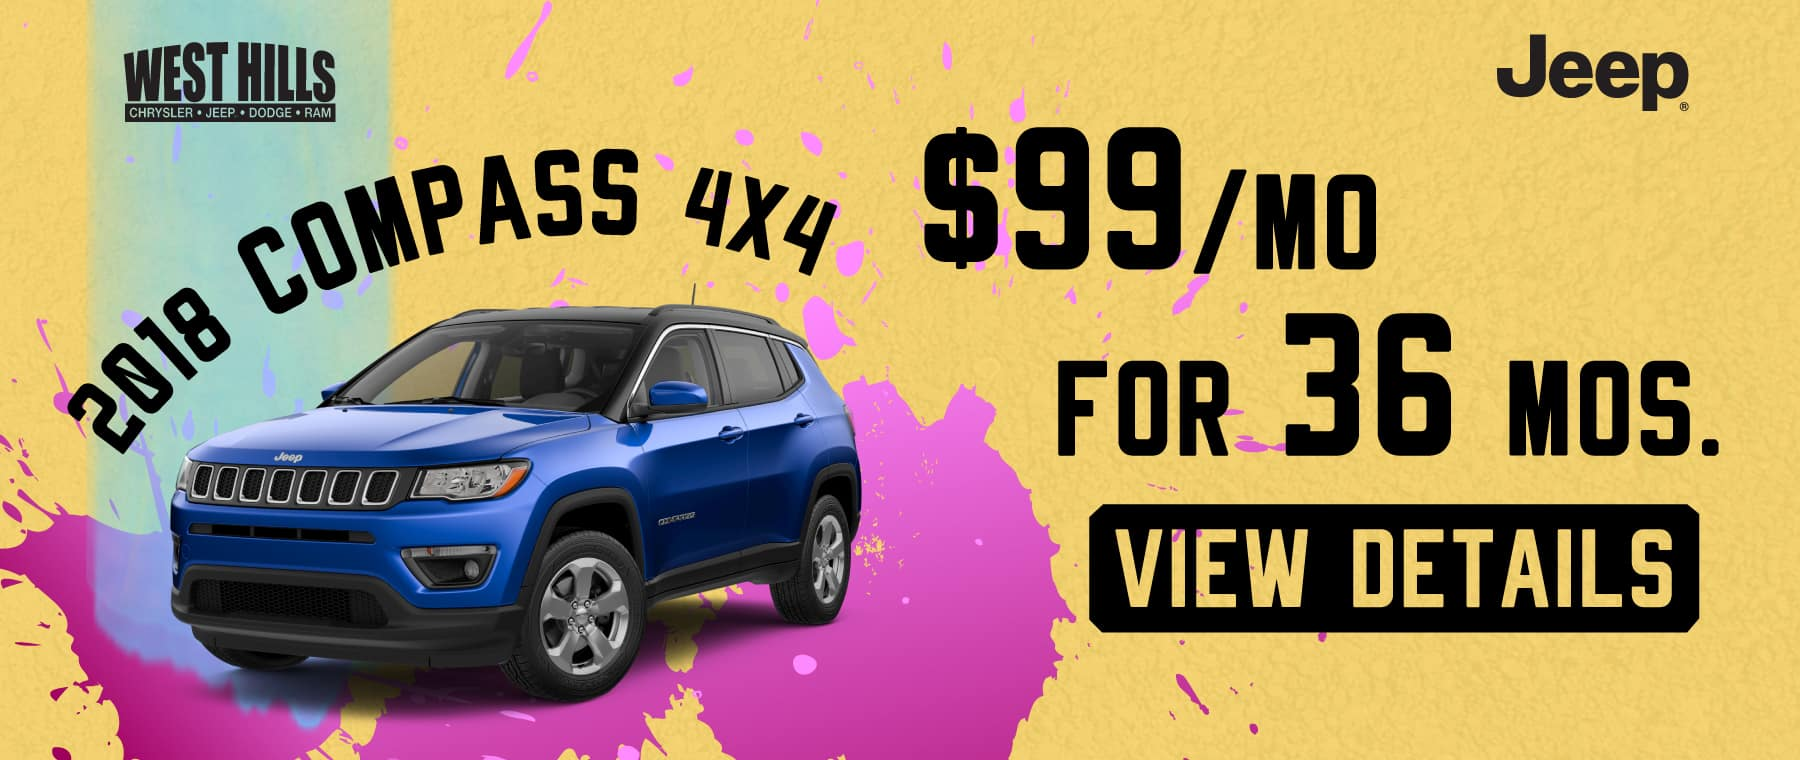 2018 Jeep Compass 4x4  $99/mo. For 36 mos.*